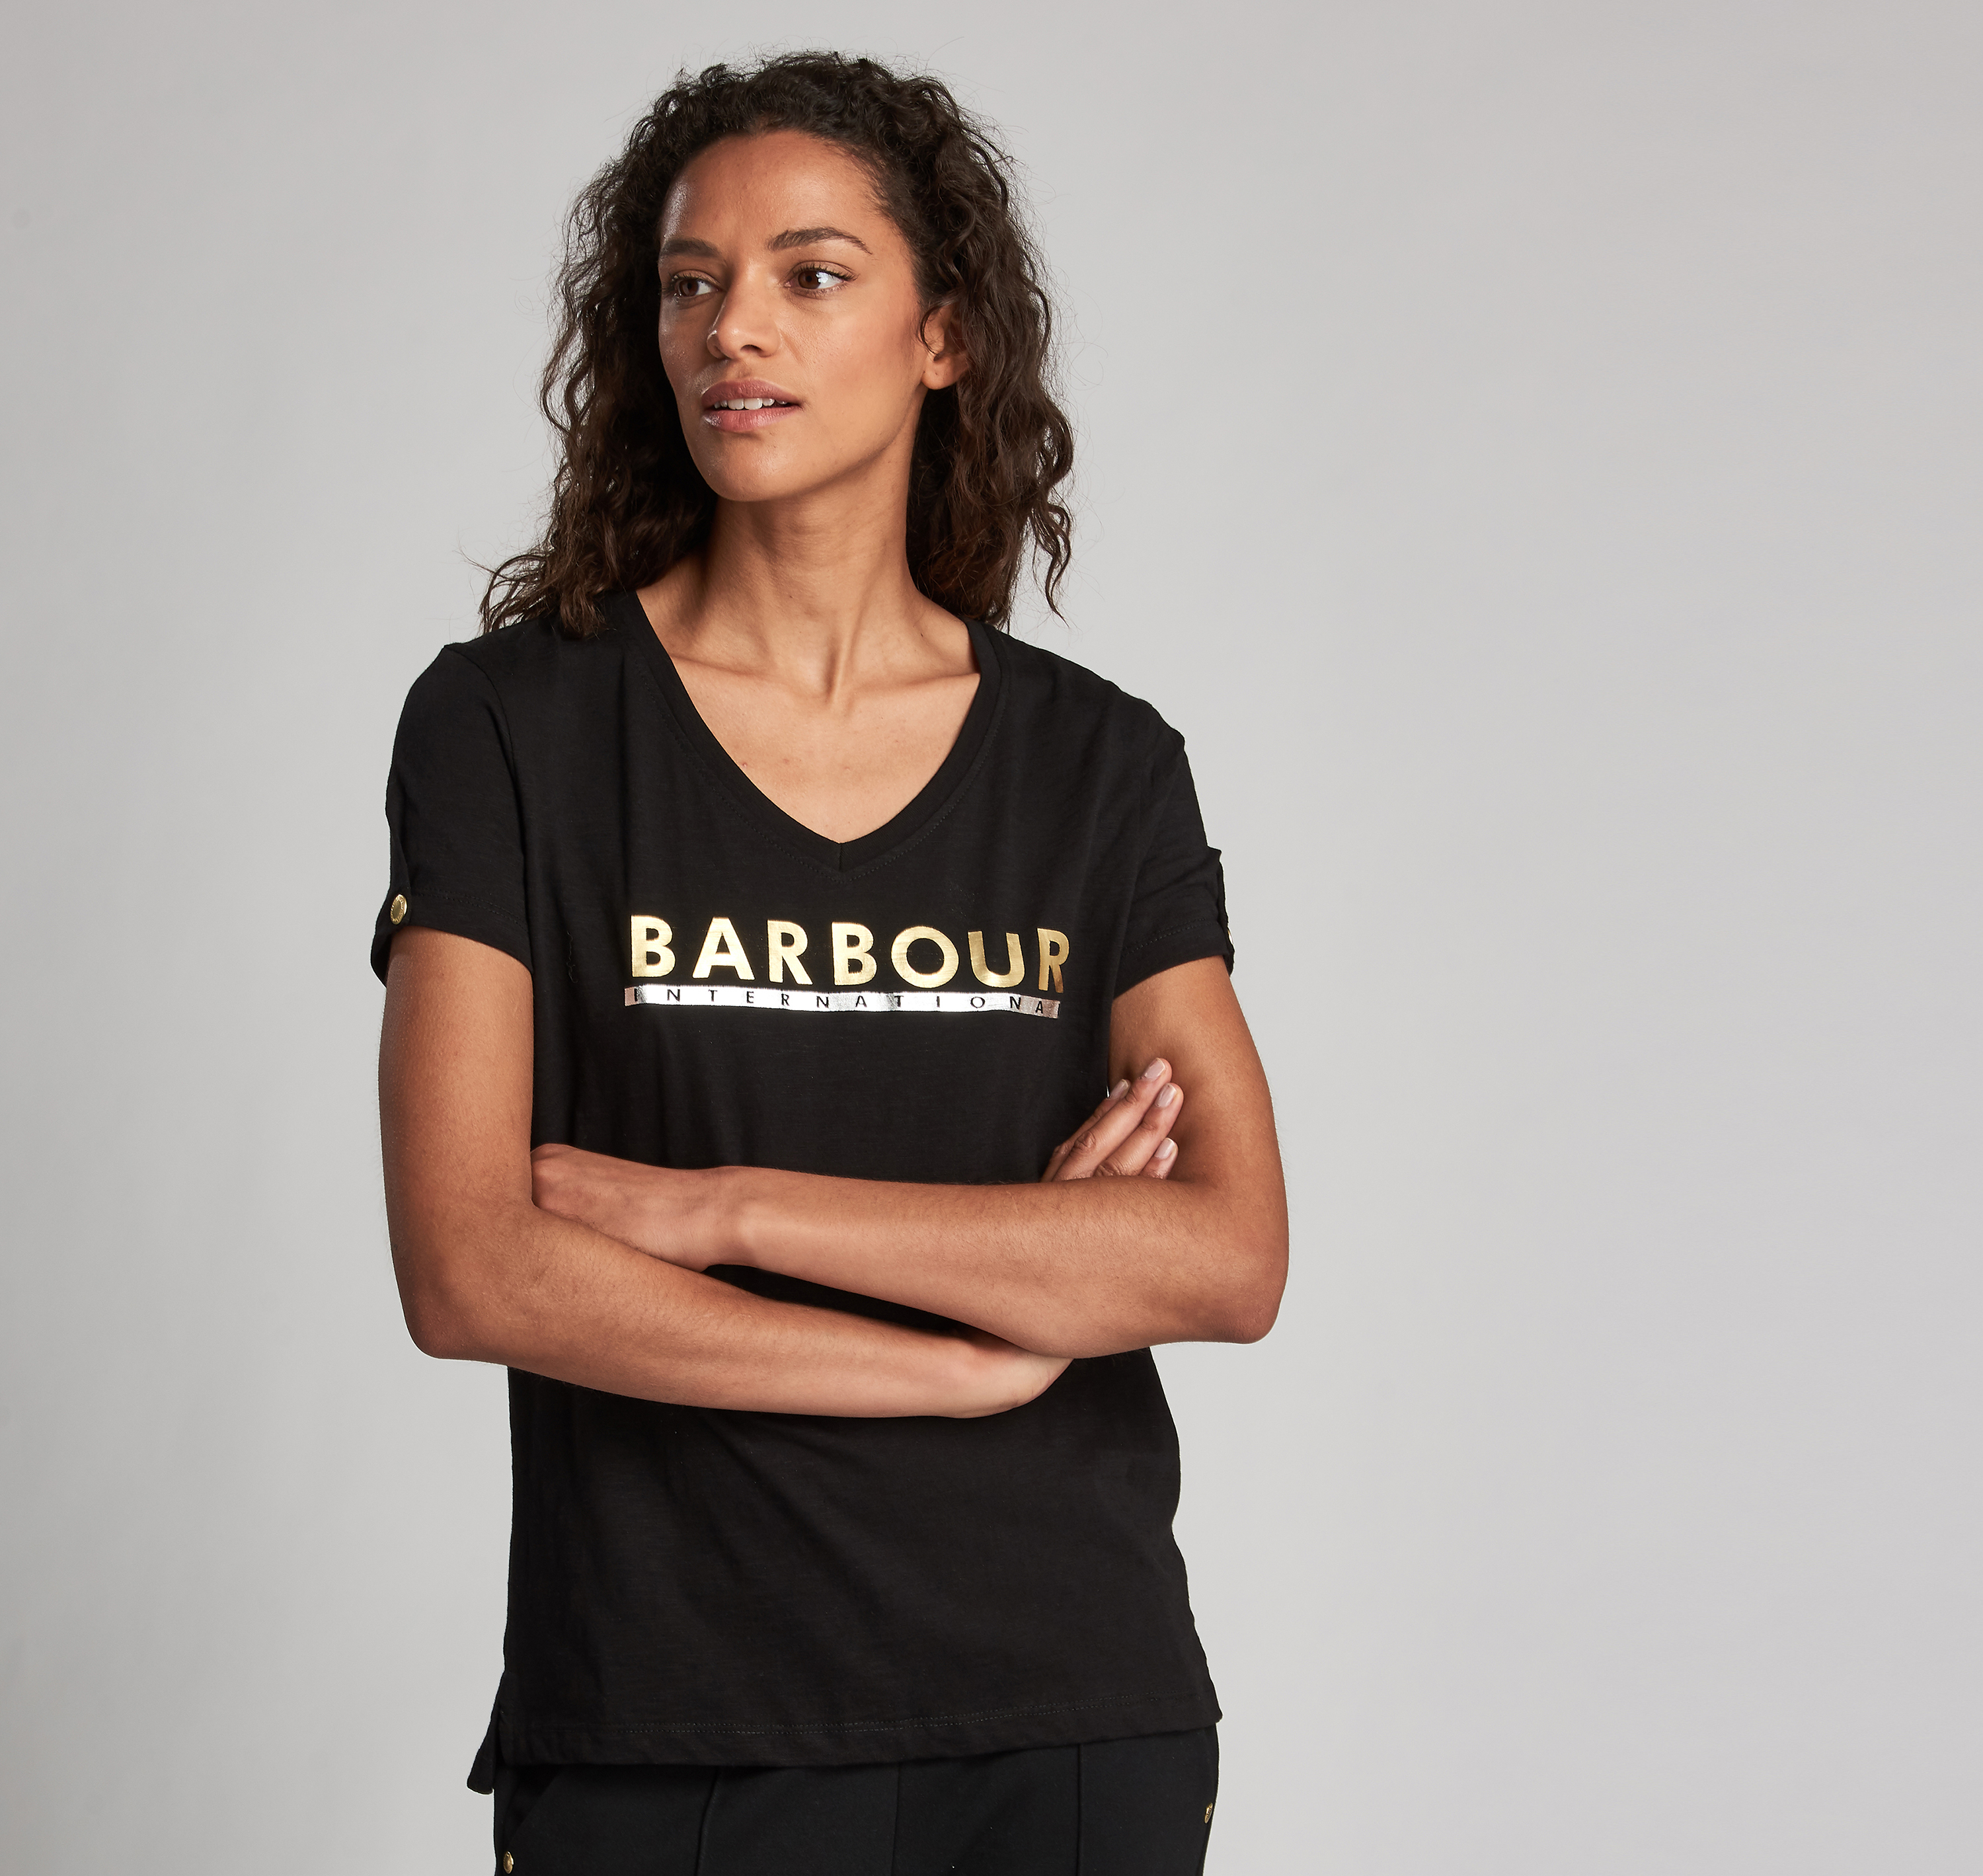 Barbour Huddle T-shirt Black